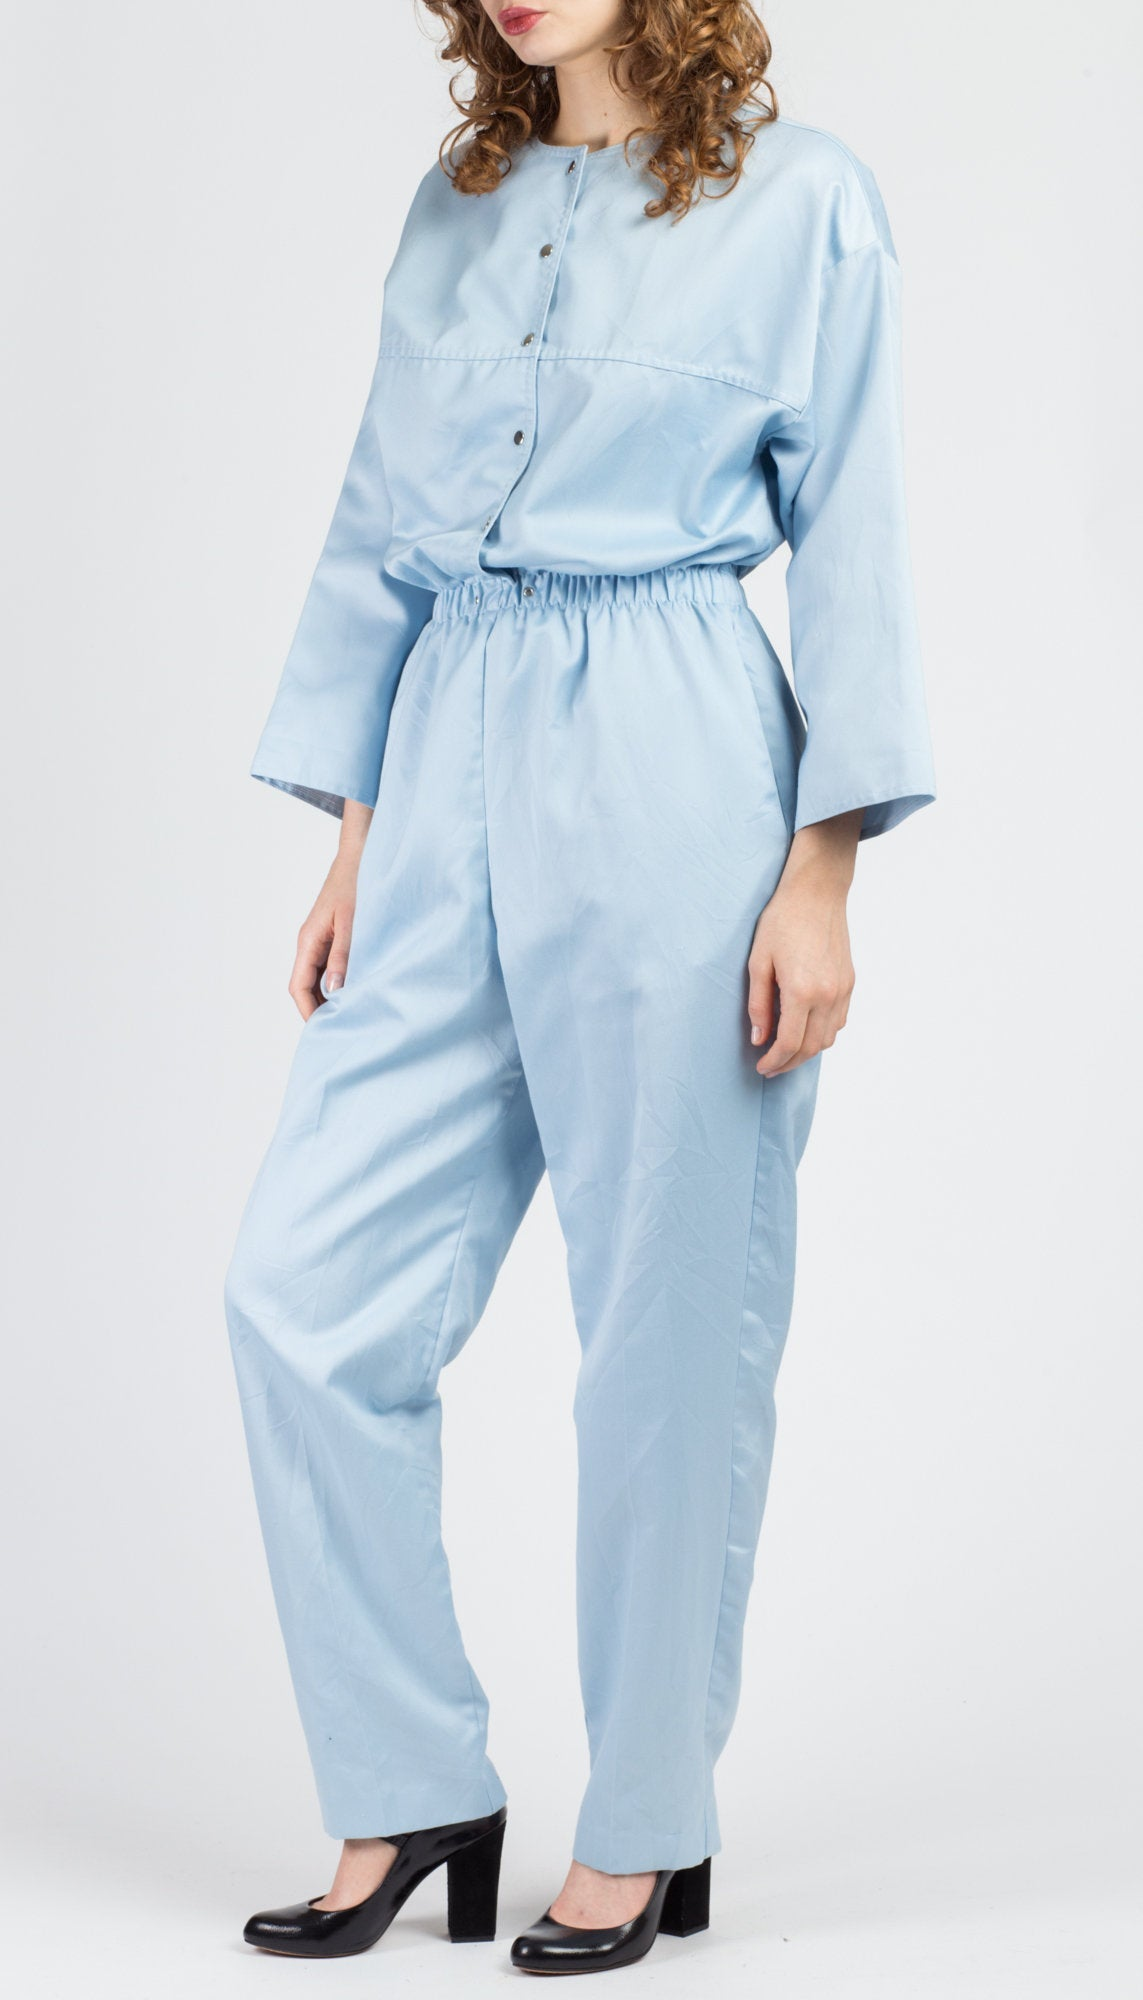 80s Baby Blue Jumpsuit - Medium to Large